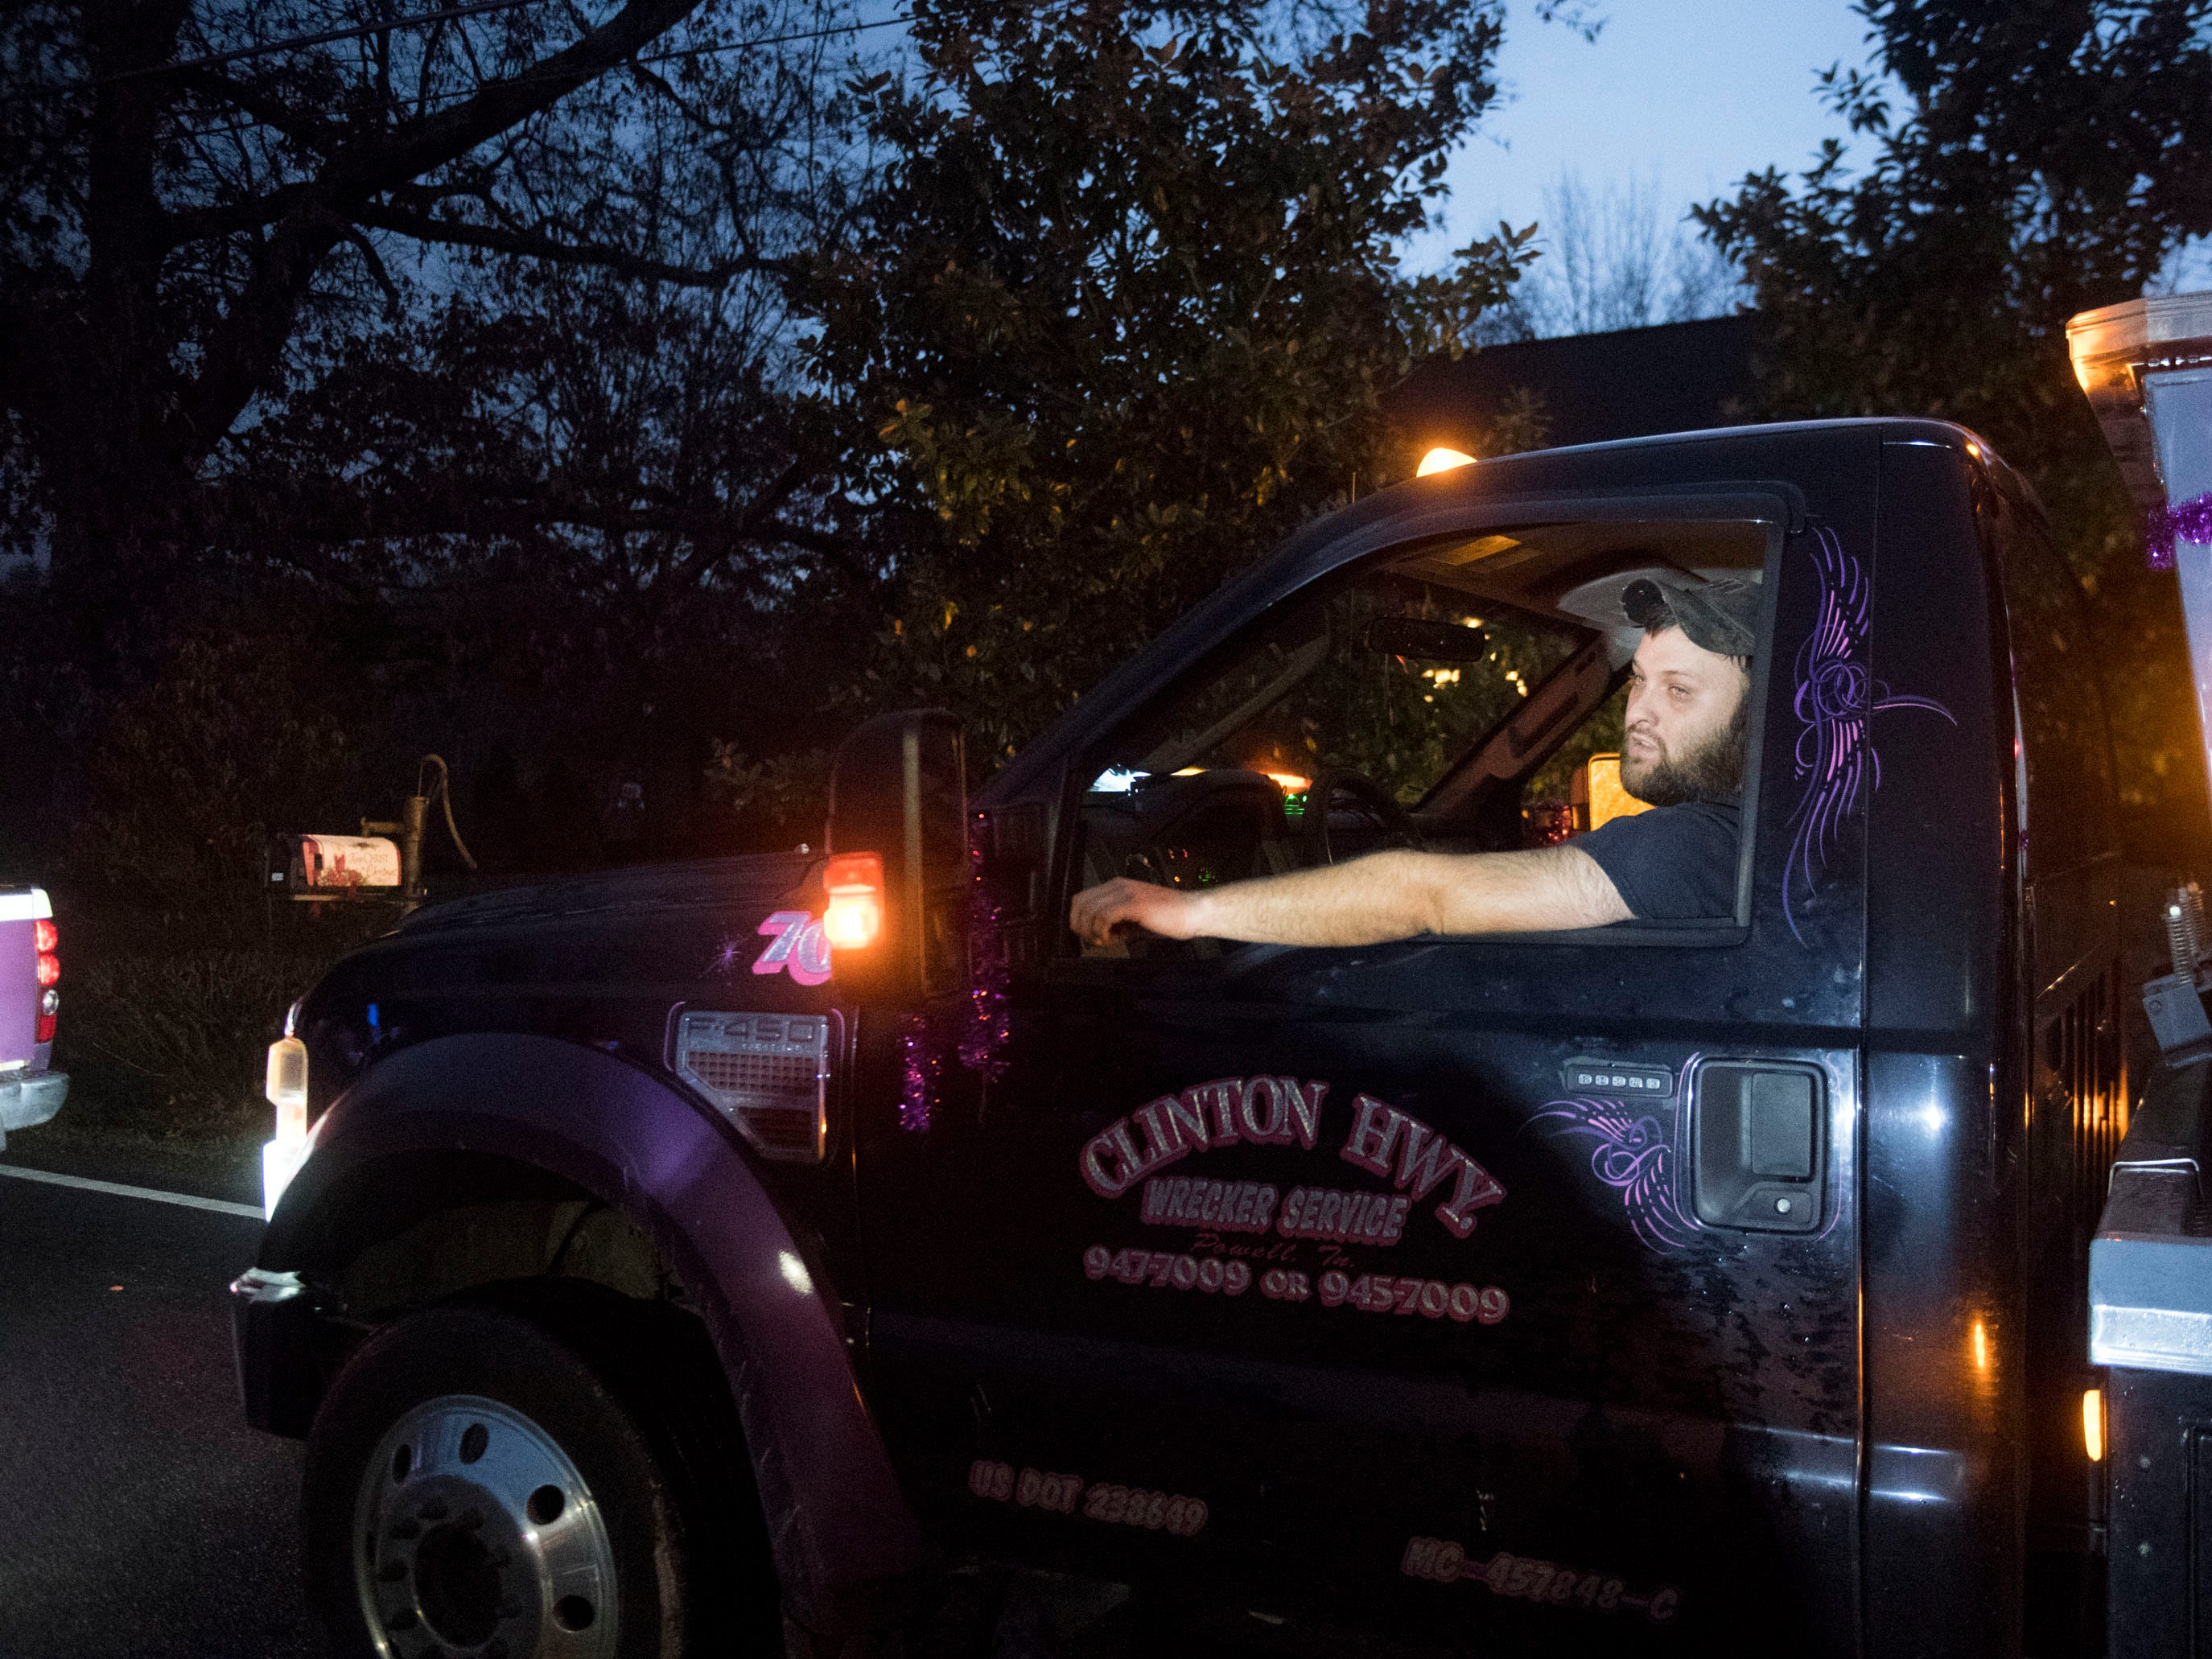 Clinton Highway Wrecker Service in the Powell Lions Club Christmas Parade on Saturday, December 1, 2018.